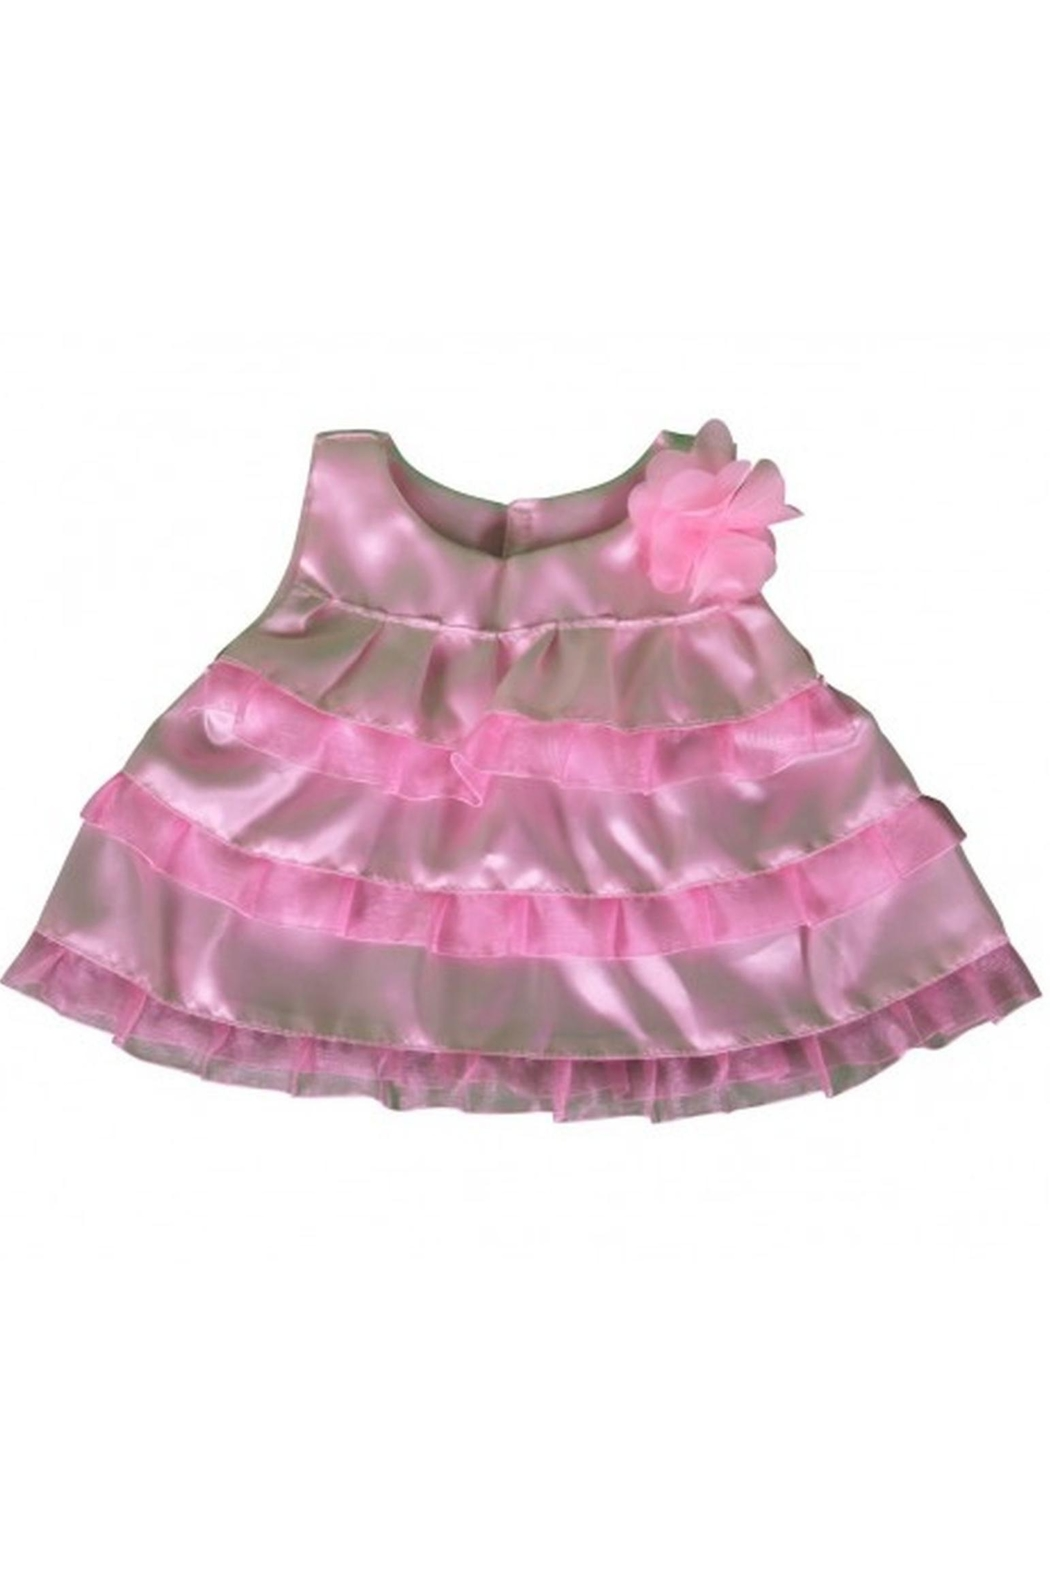 Cuddles and Friends Teddy Pink Dress - Front Cropped Image